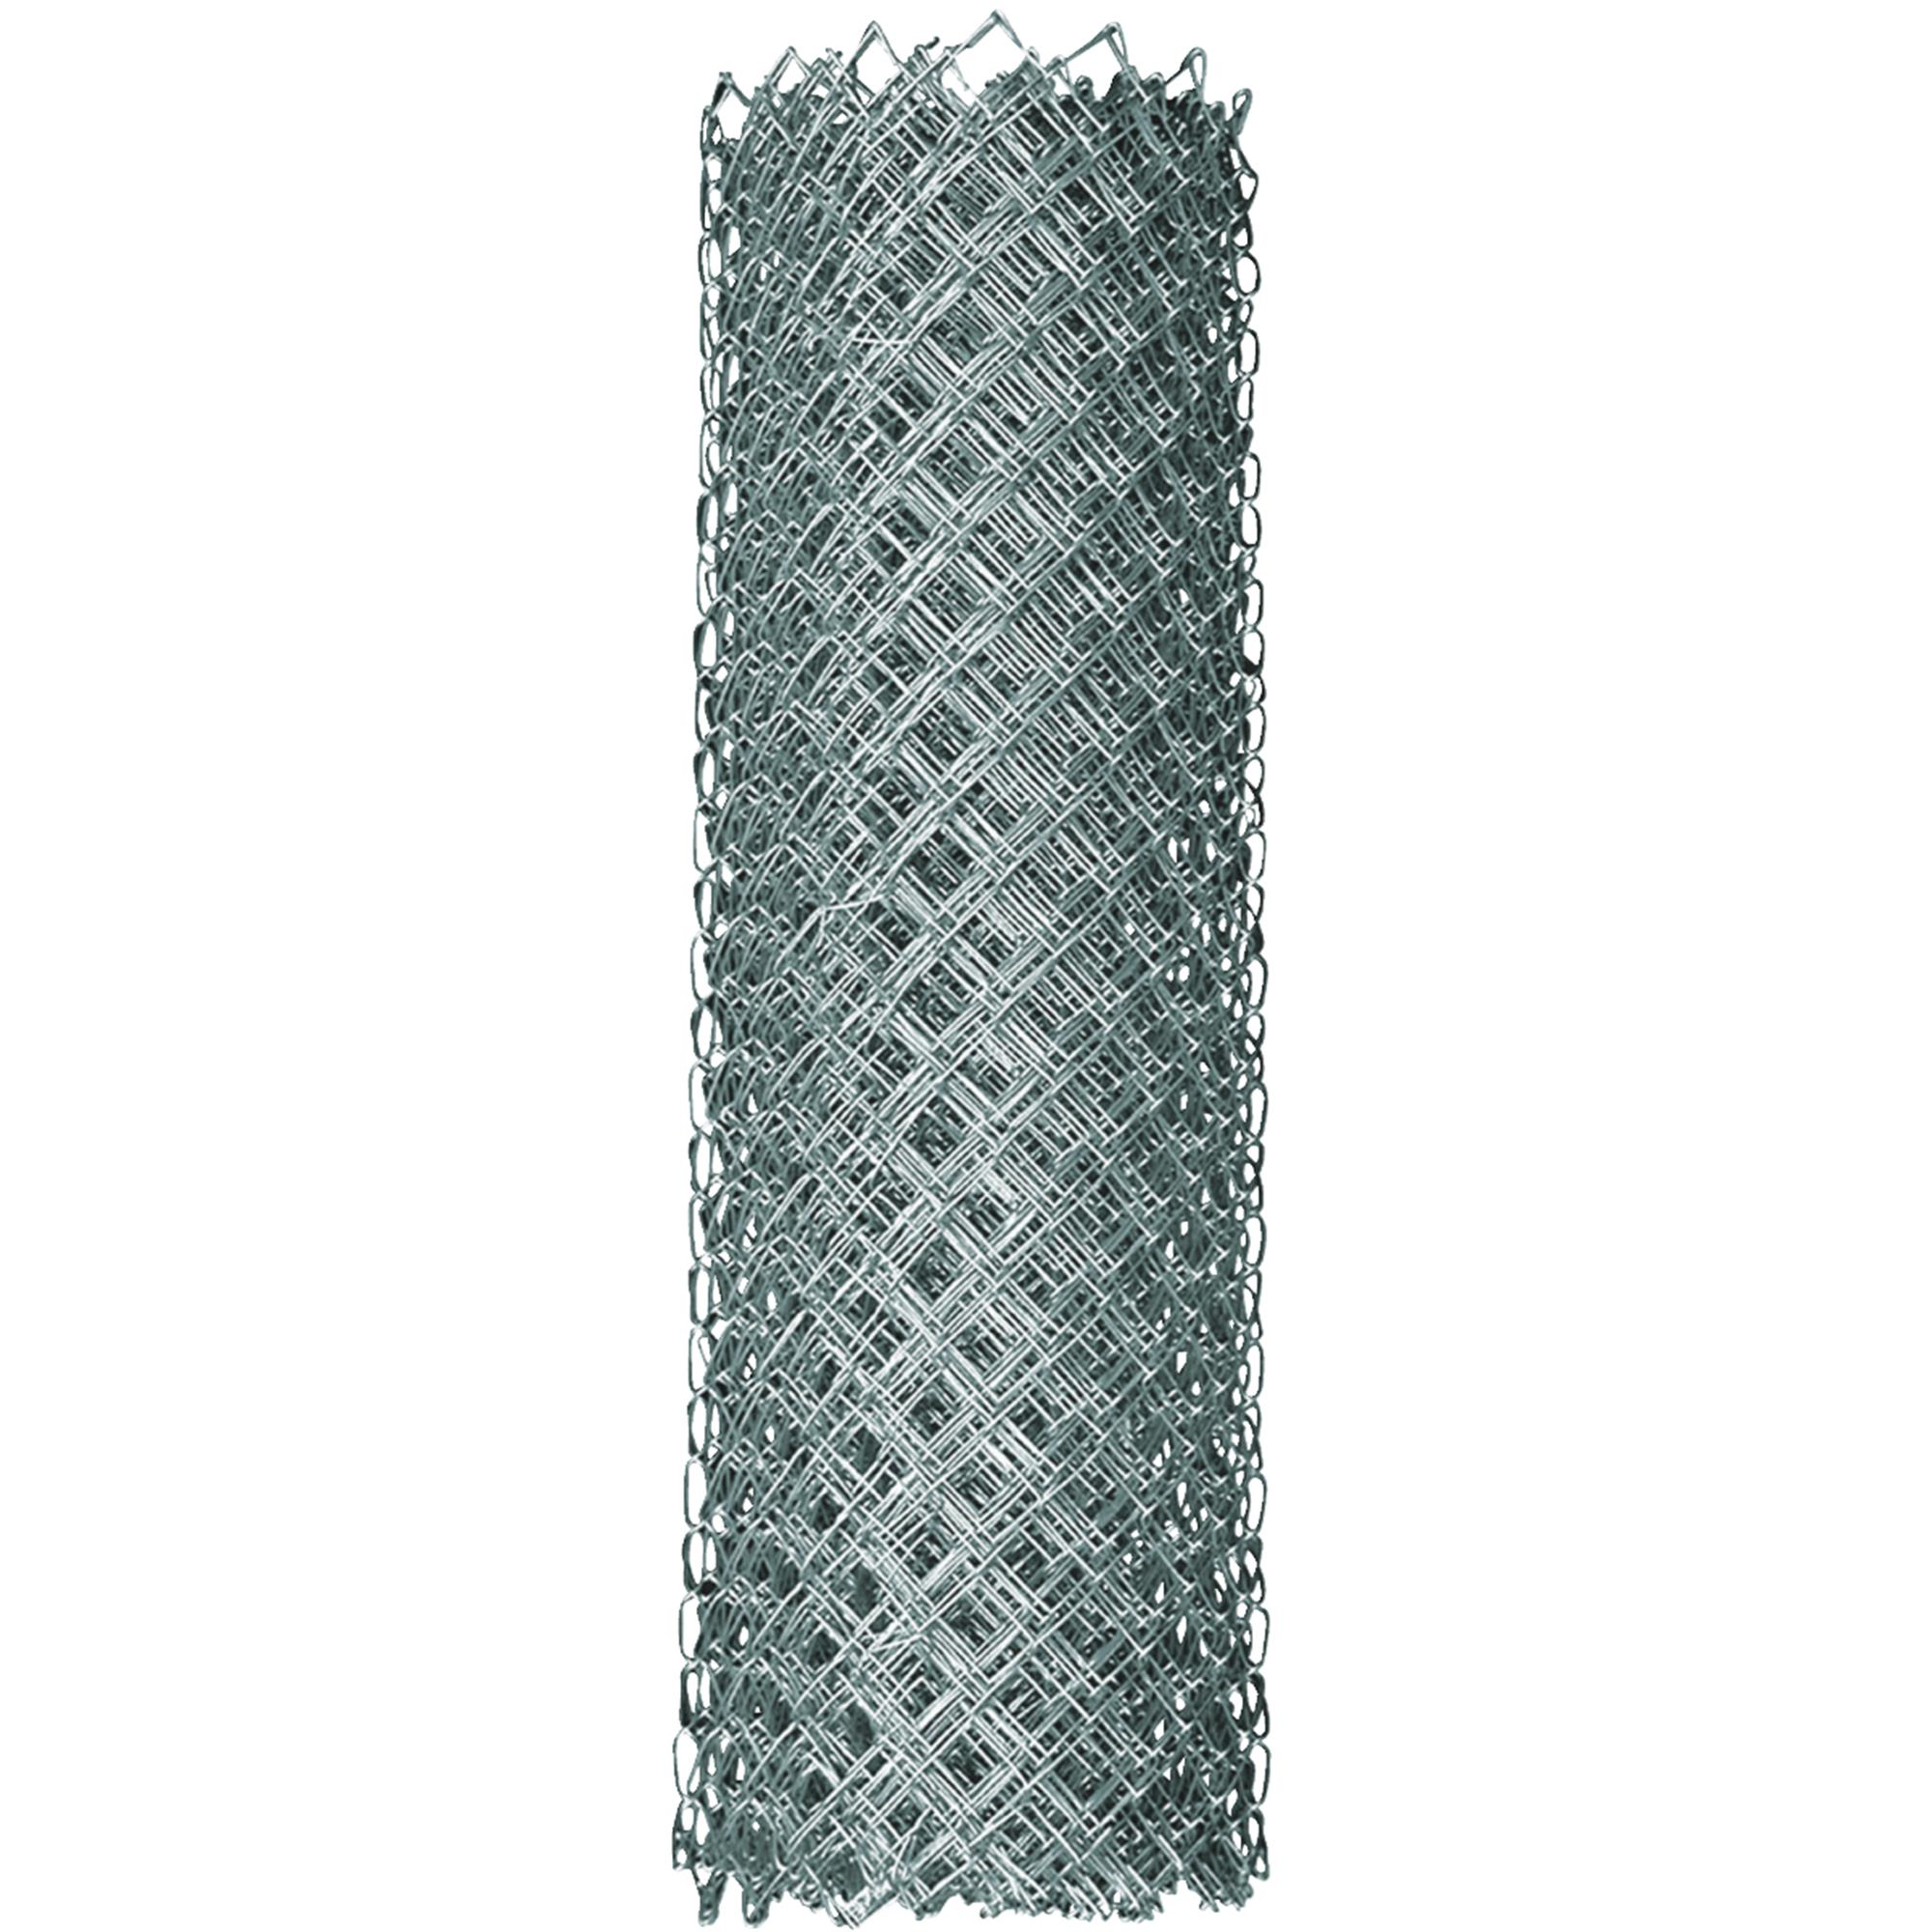 MAT YardGard Chain Link Fencing Fabric